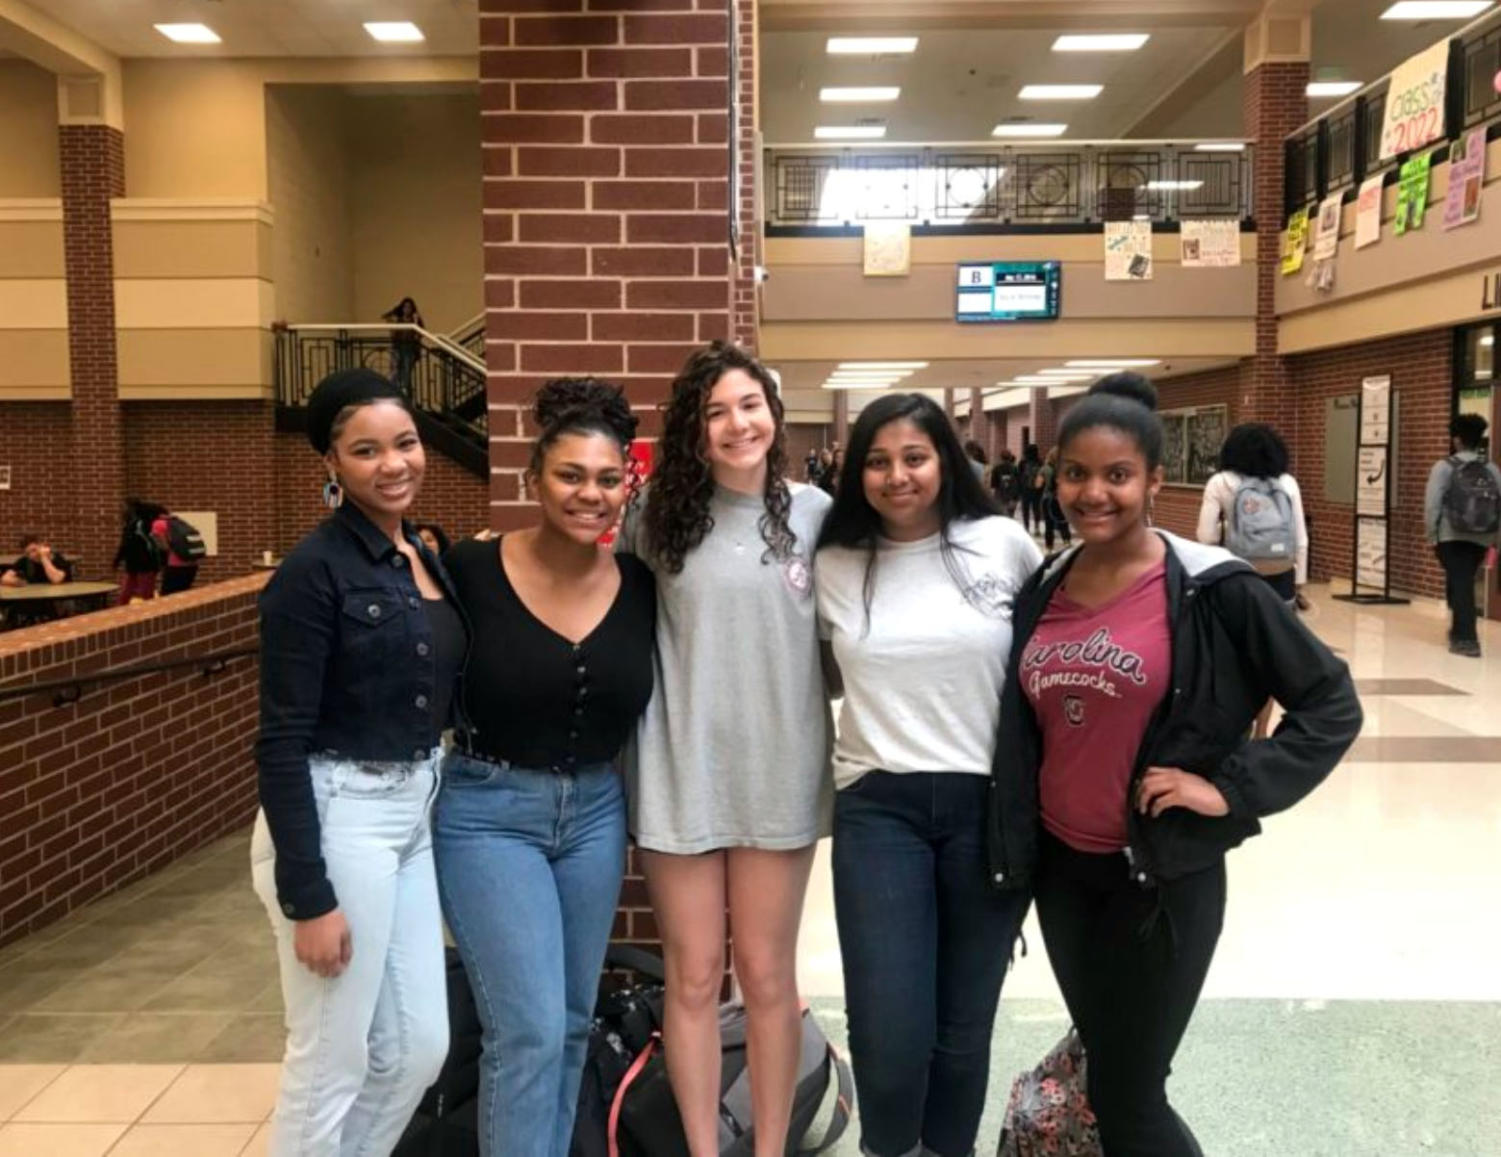 The United Cultural Society club founders gather near the cafeteria. Current club members include Tori Evans, Bronté Funches, Ella Keffer, Nidhi Kamath and Mikayla Brown.  The students have worked with Assistant Principal Dedrick Buckles and the club's sponsor, Audra Claypoole.